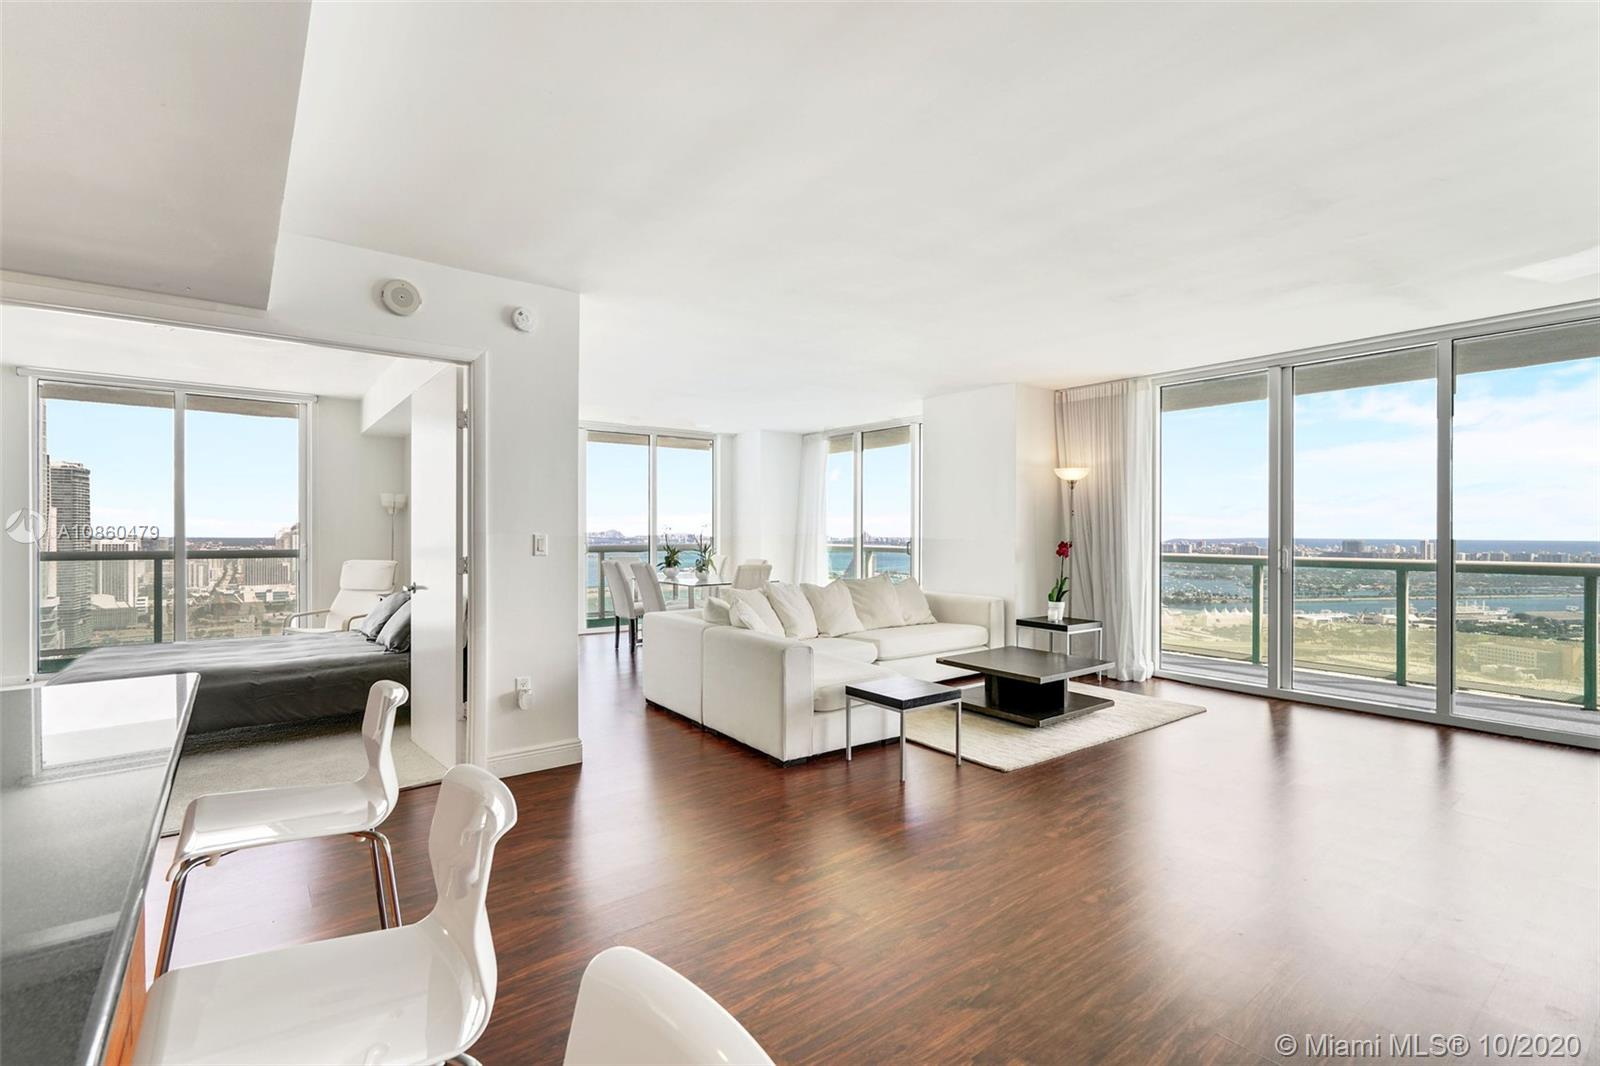 Available July 13 for 6 month lease or longer: Luxurious 3 bedroom 2 bathroom furnished corner unit with unobstructed water views from every room! Spacious floor plan with wrap around balcony & floor to ceiling glass. In perfect location: across from the bay and walking distance to all shops, restaurants, arena, performing arts center and Brickell. In sought-after full service top of the line building with 24 hr security & valet, heated pool w/towel service, fitness center with spa, sauna & classes and more. Internet, cable & hot water are also included in rent.